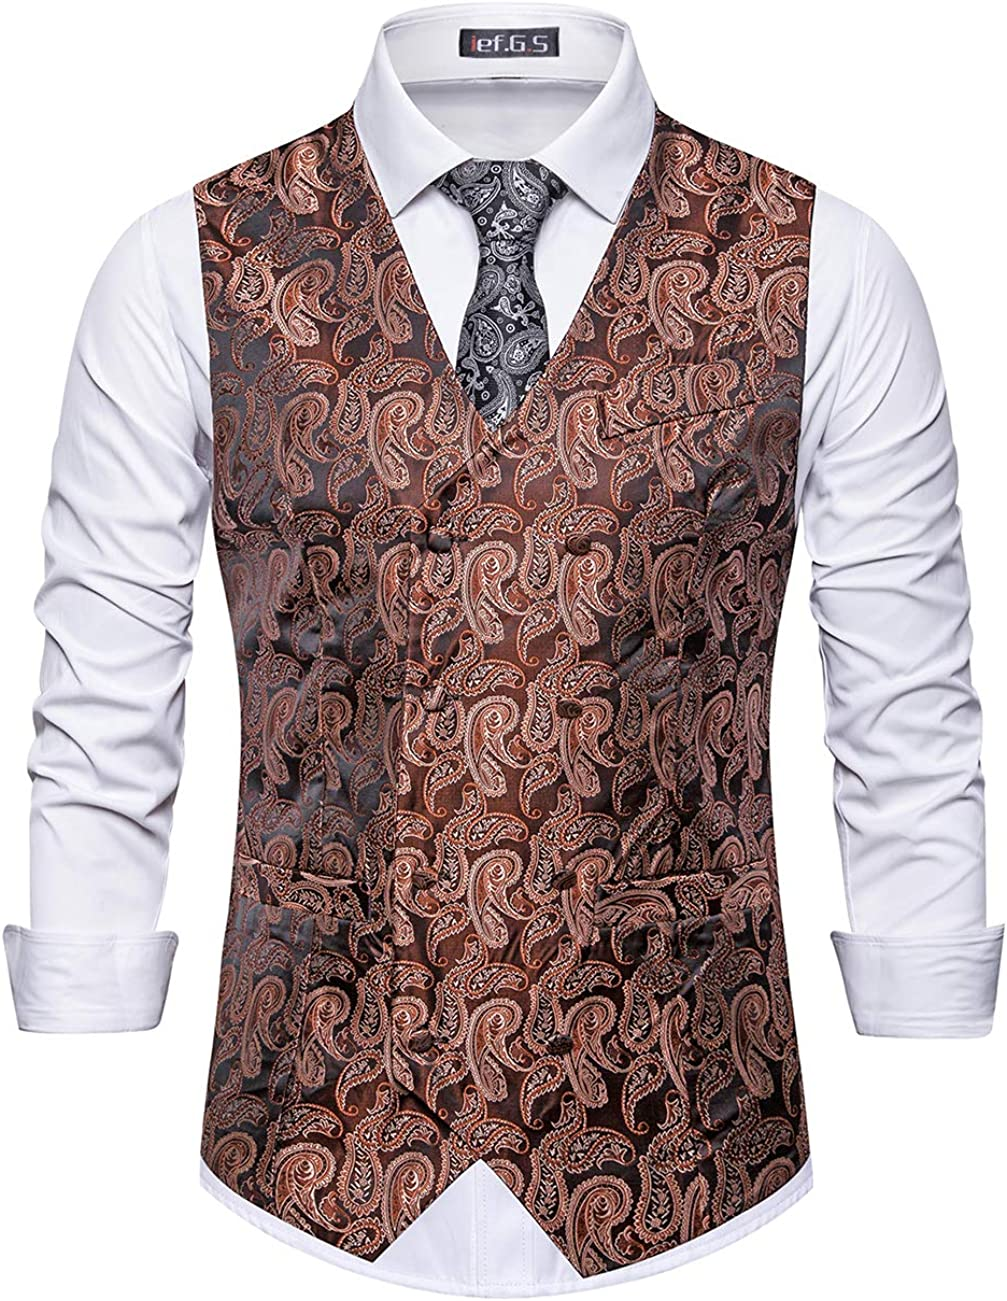 ief.G.S Mens Vests Dress, Fashion Paisley Floral Jacquard Print Waistcoat Suit Vest for Men or Tuxedo Vest